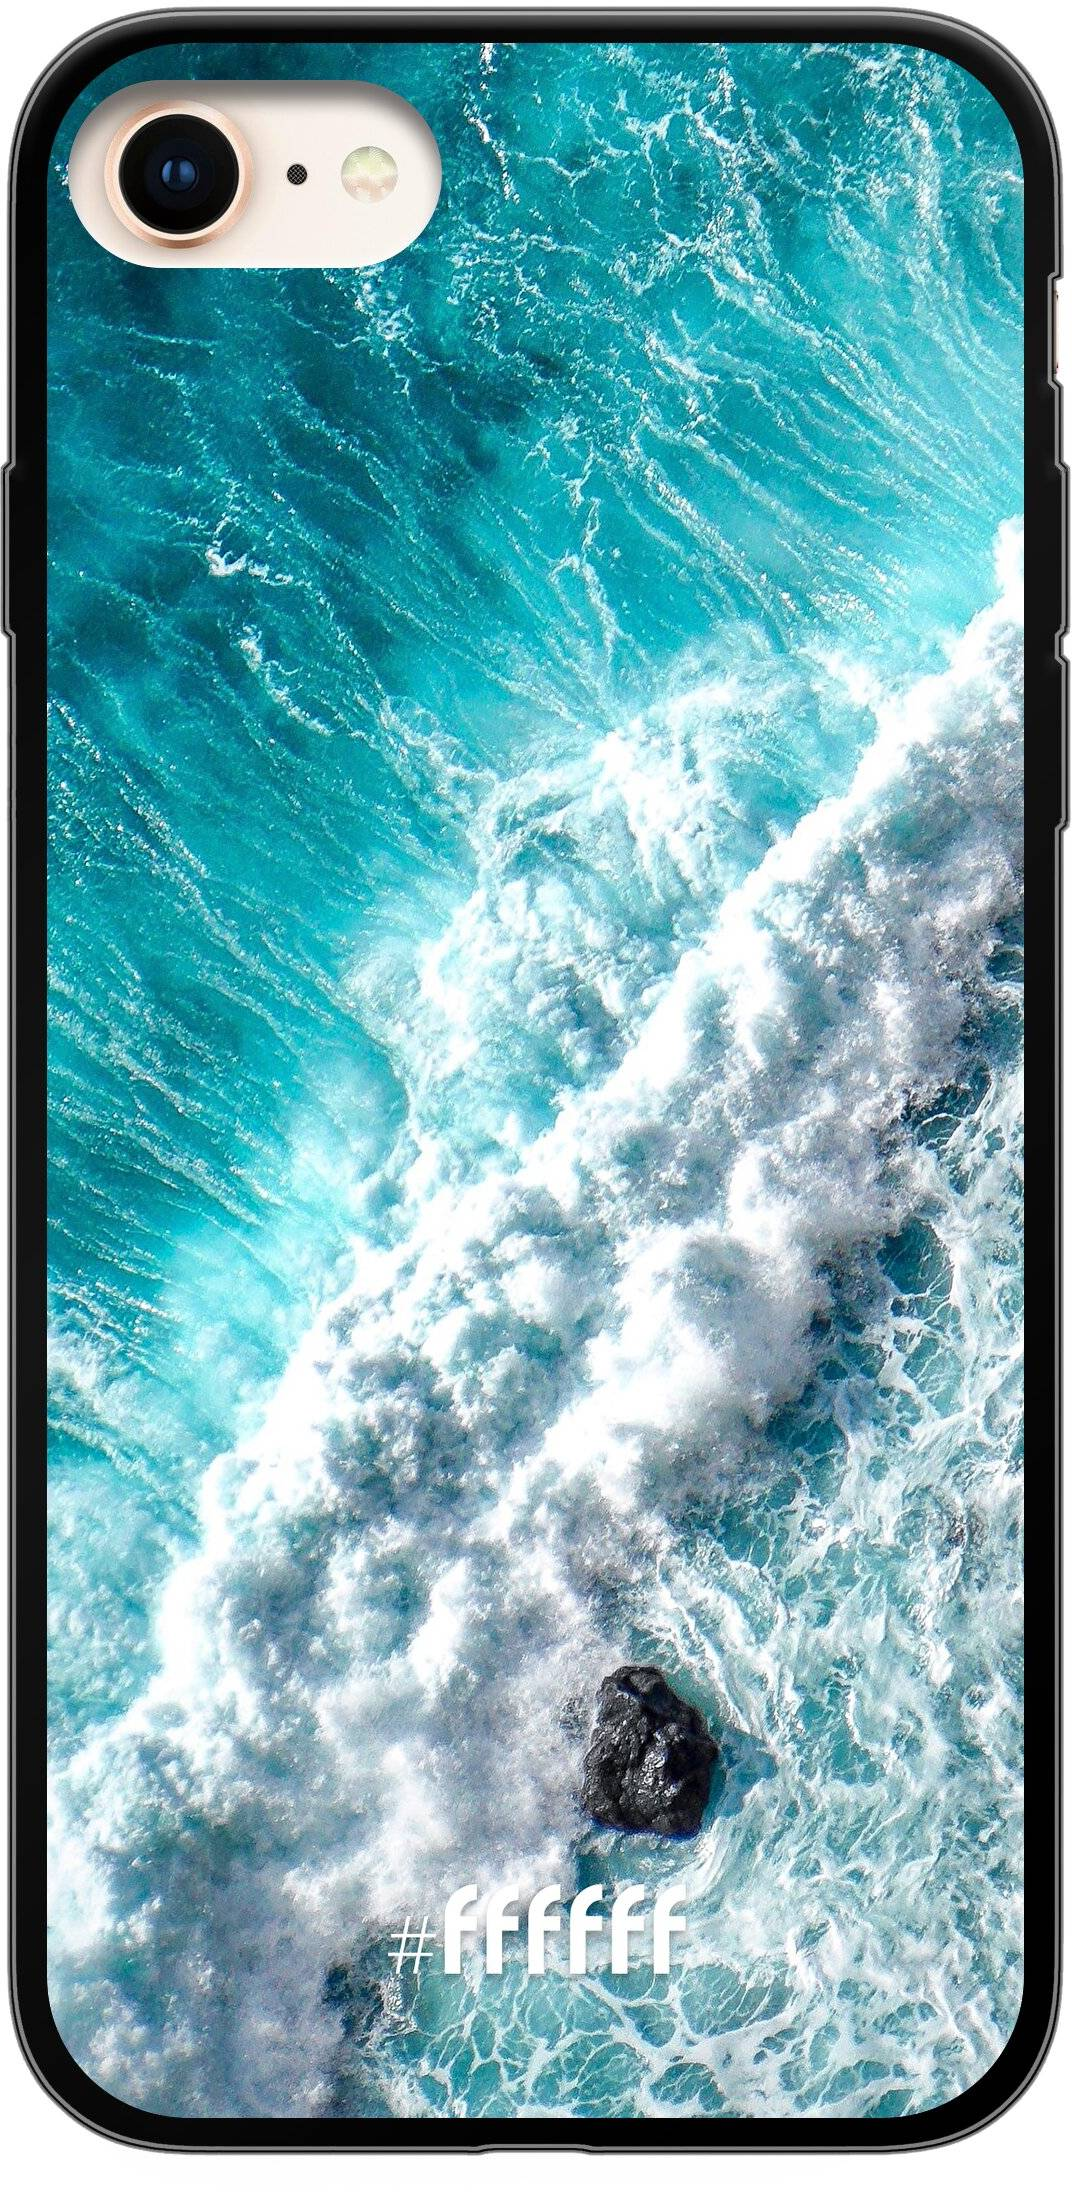 Perfect to Surf iPhone 7